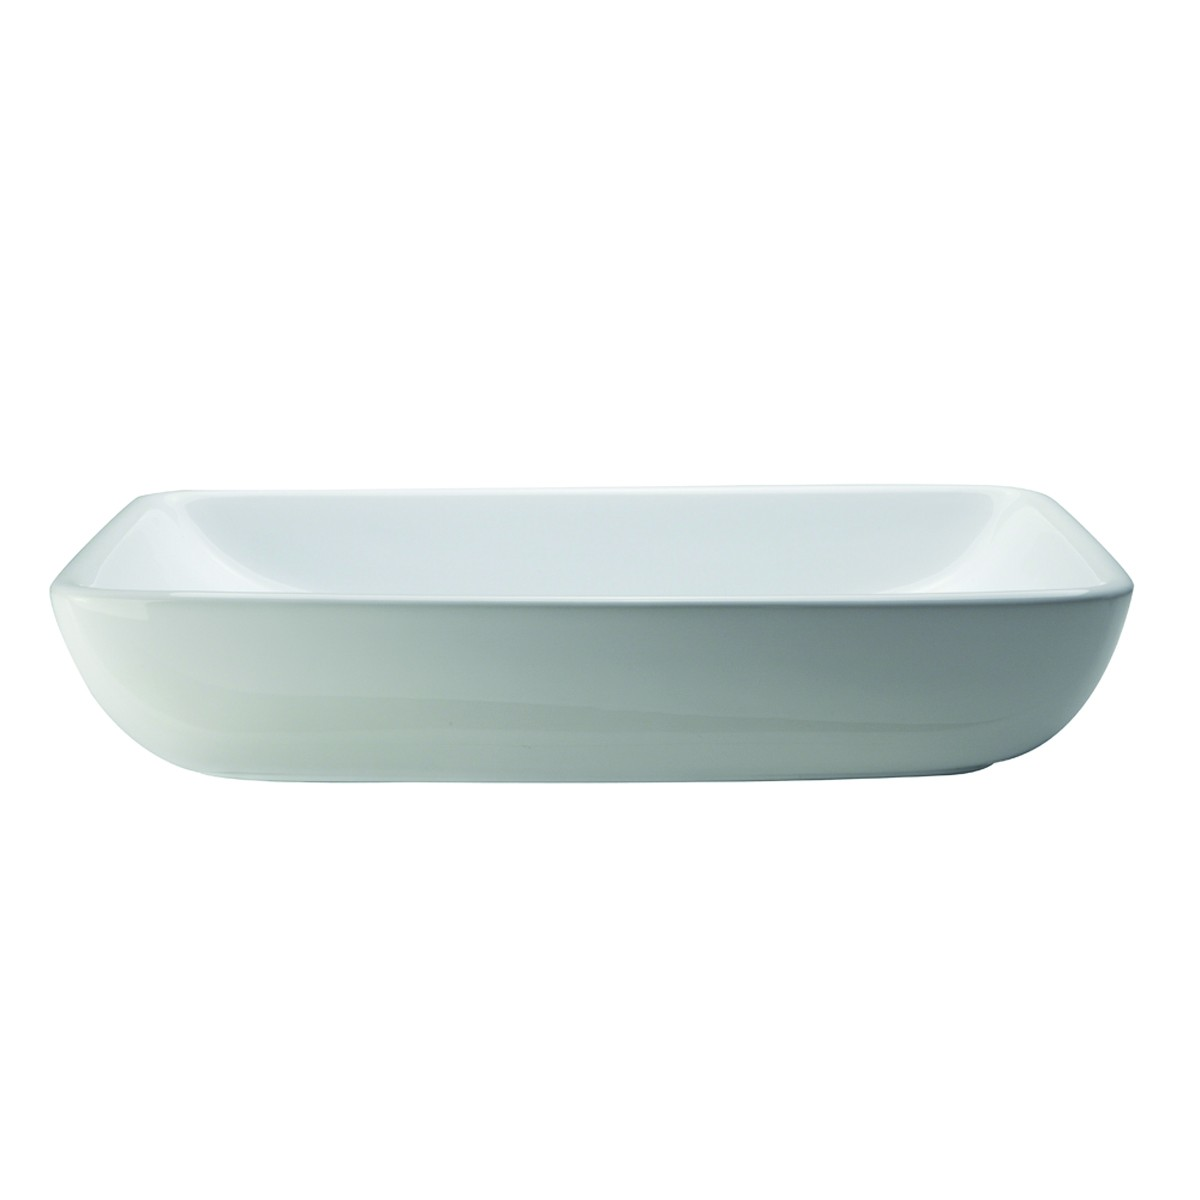 Decolav Sinks : Decolav 1445-CWH Classically Redefined Above Counter Rectangular ...